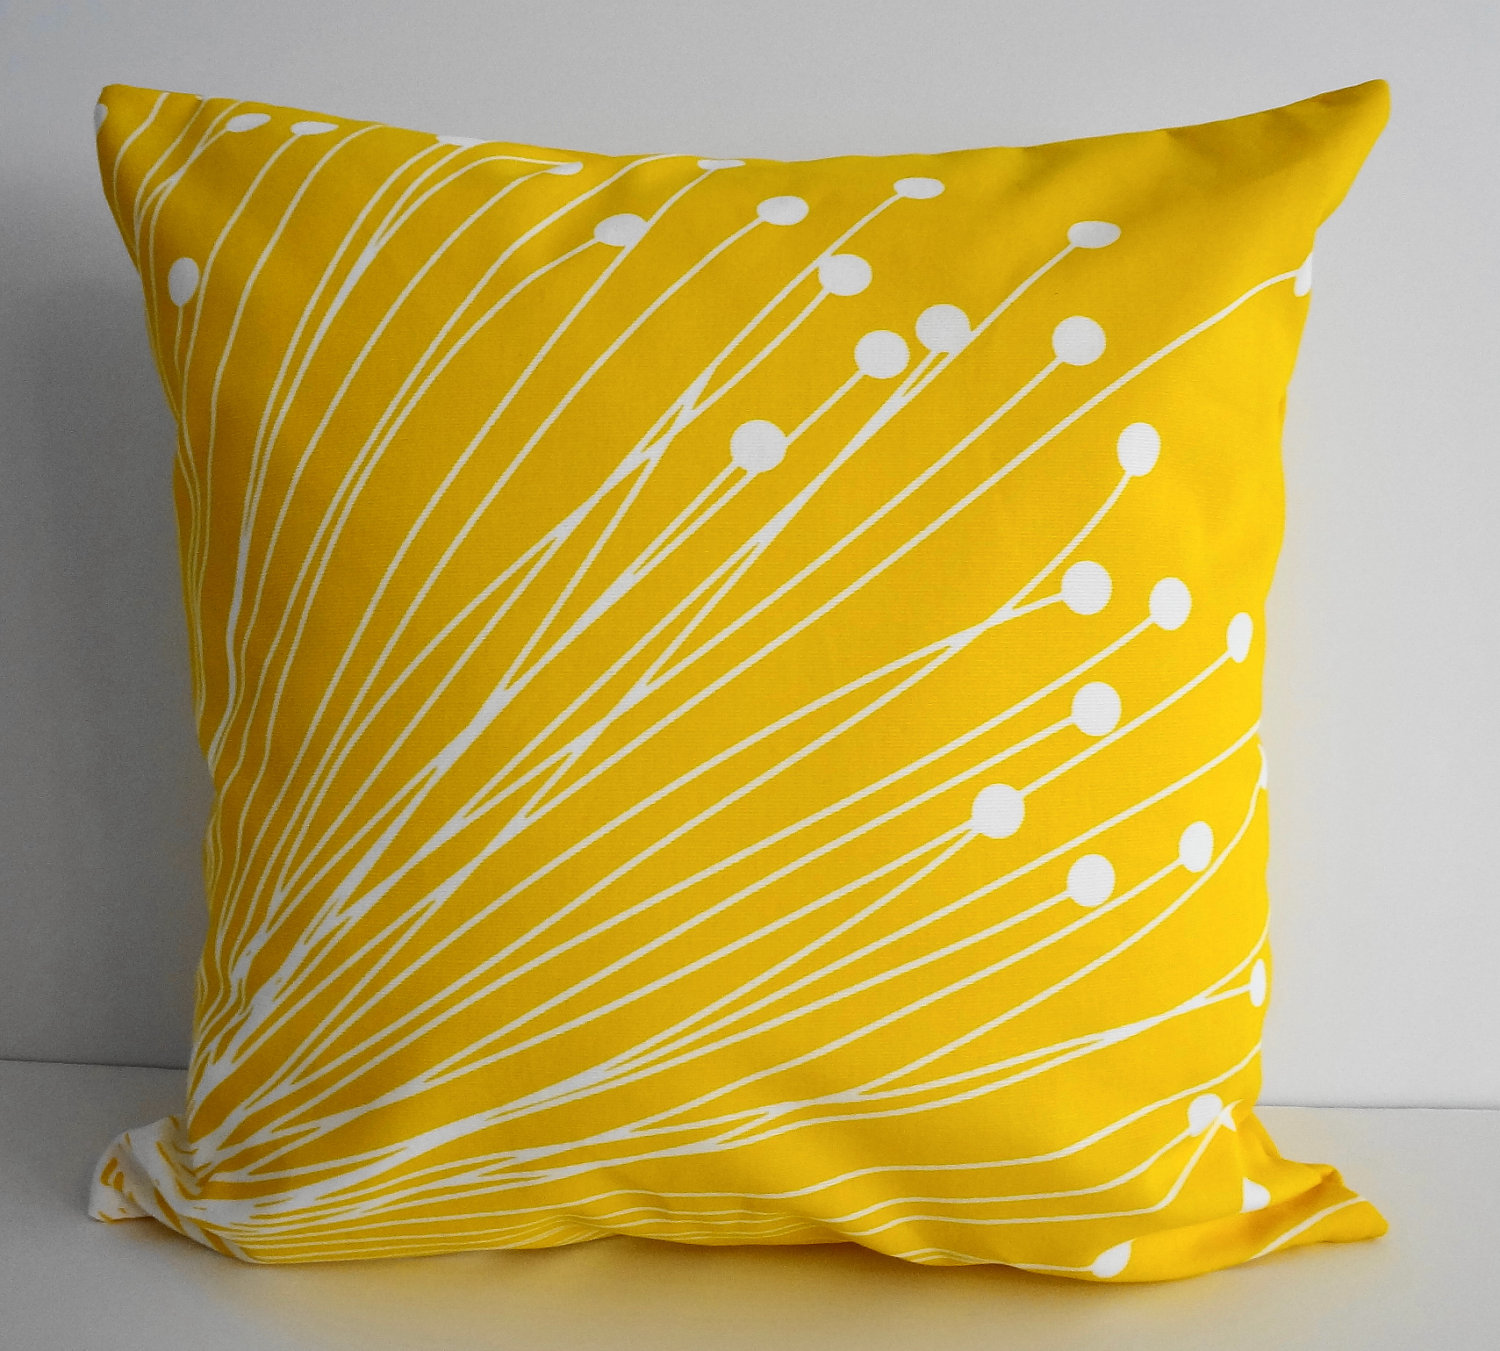 Amusing yellow throw pillows with 20x20 inches and with true patterns yellow throw pillows for living room ideas